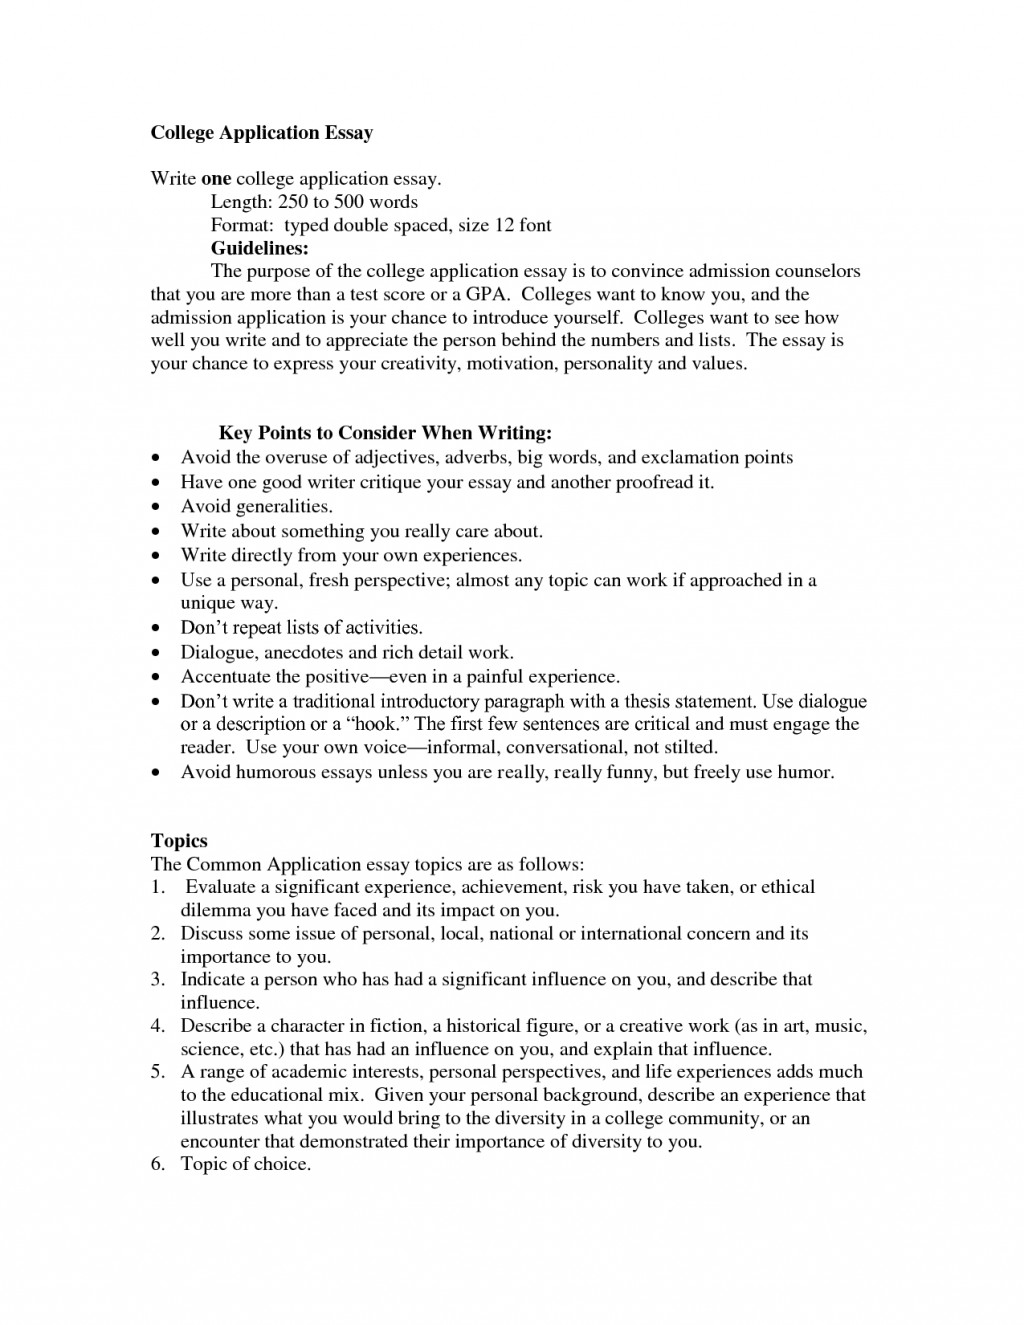 004 College Essay Header Application Heading Printables Corner For Ecza Solinf Co Int Admission Format Archaicawful Margins Large